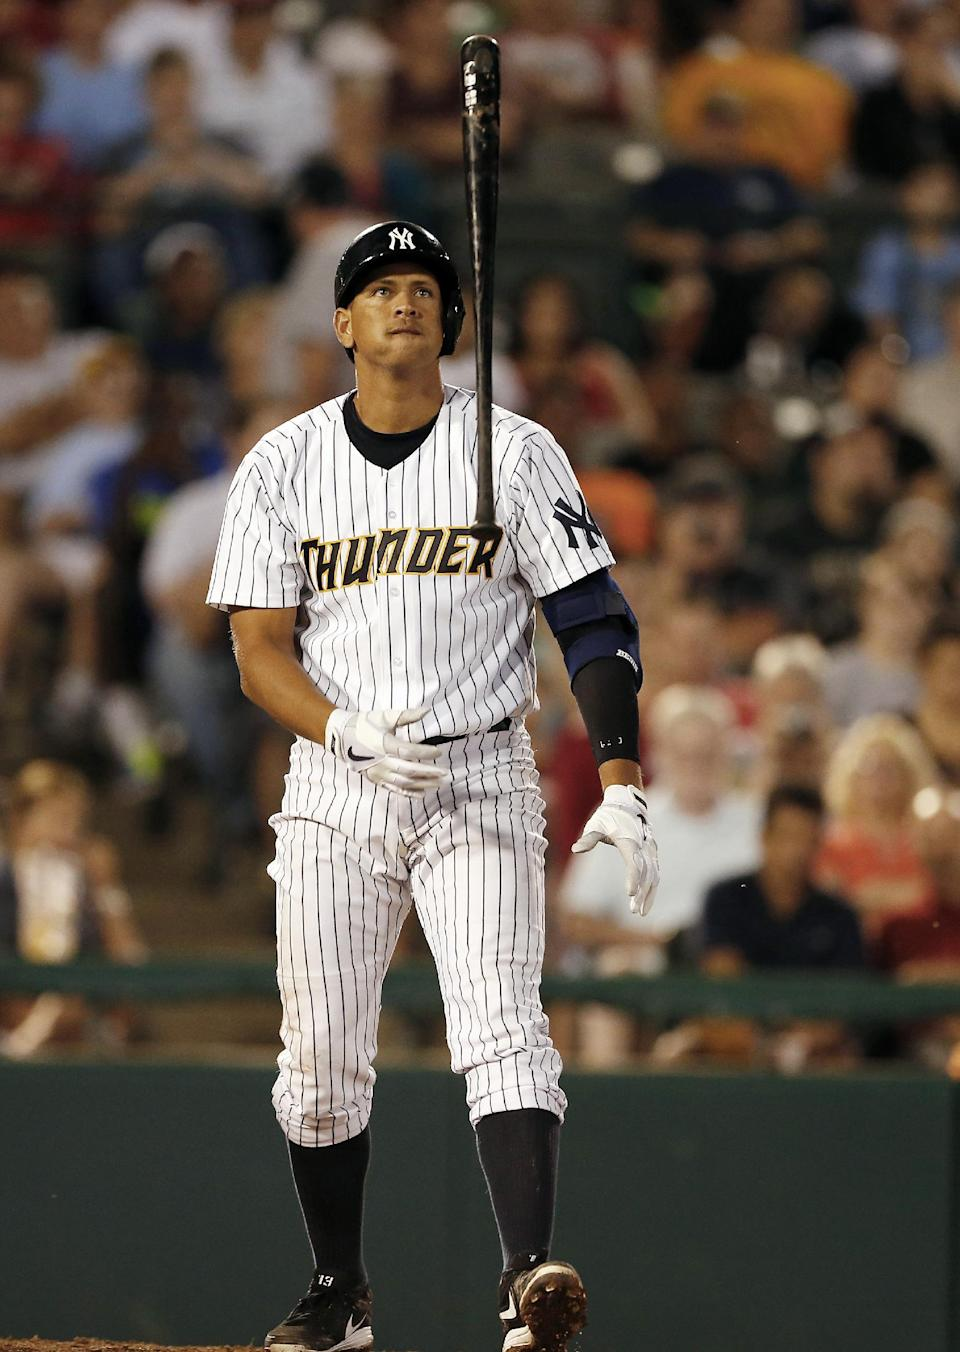 New York Yankees' Alex Rodriguez flips his bat after missing a pitch in the fifth inning of a Class AA baseball game with the Trenton Thunder against the Reading Phillies Saturday, Aug. 3, 2013, in Trenton, N.J. (AP Photo/Rich Schultz)